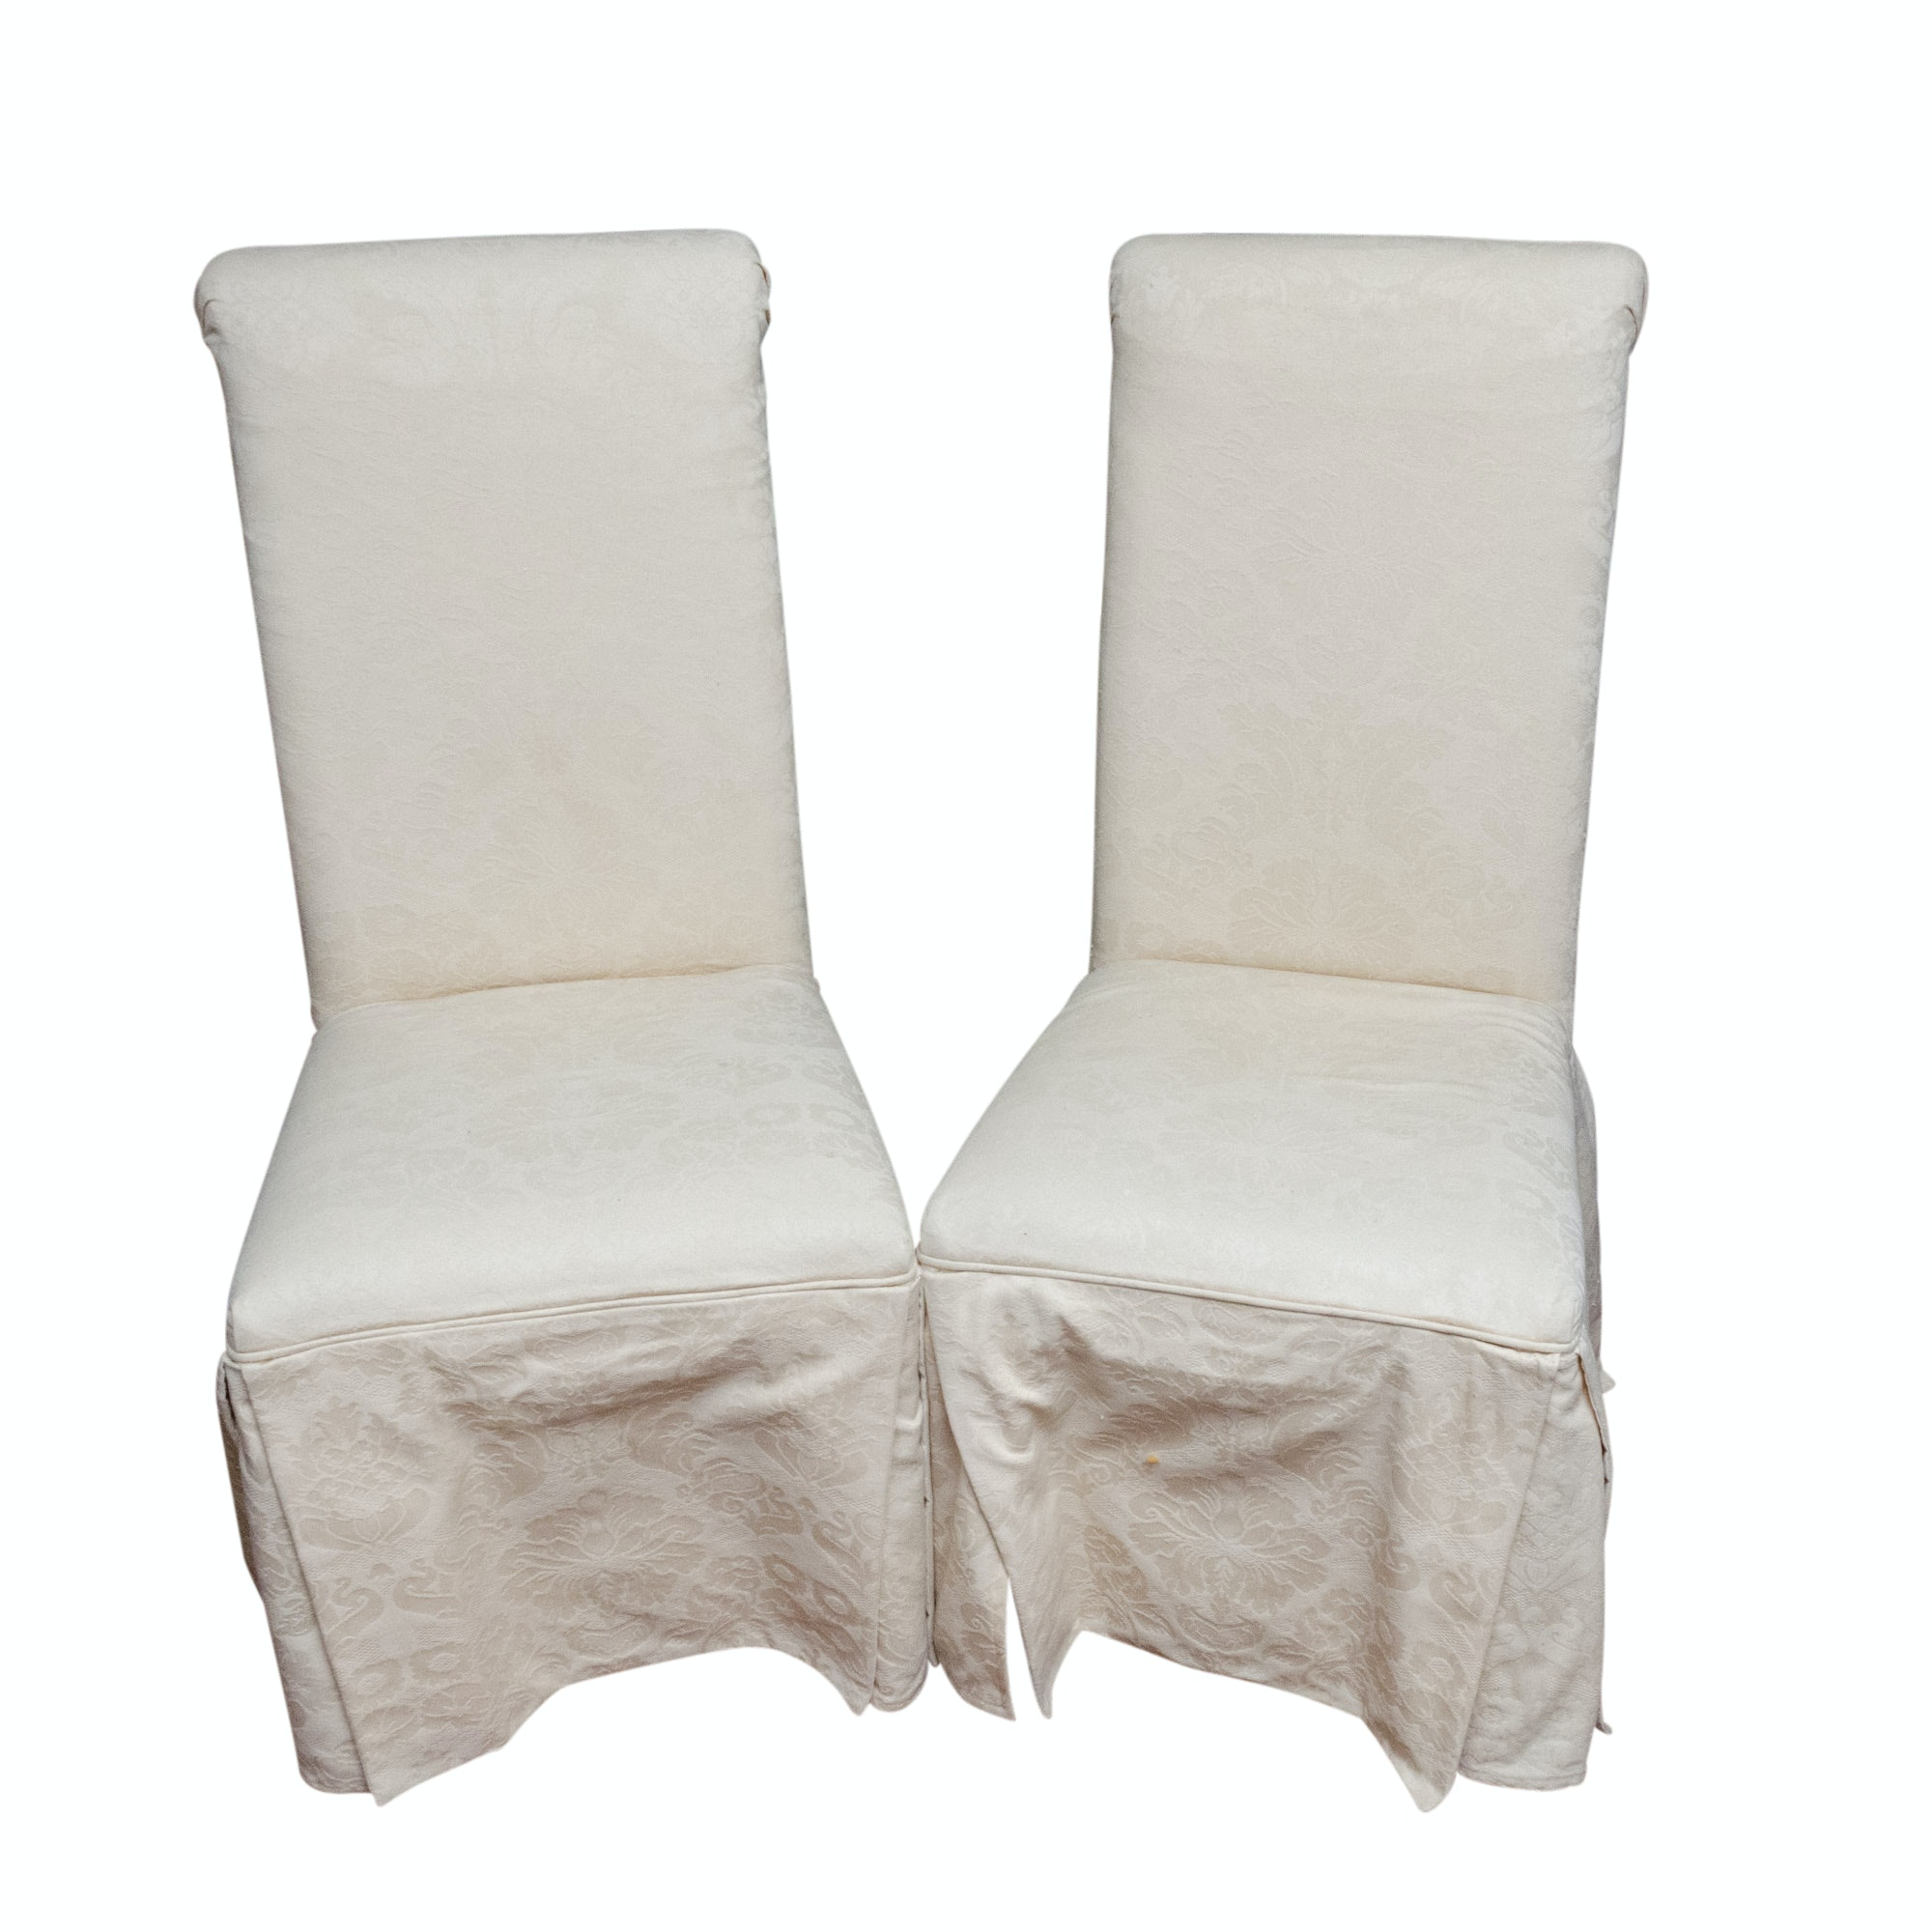 Contemporary Parsons Dining Chairs